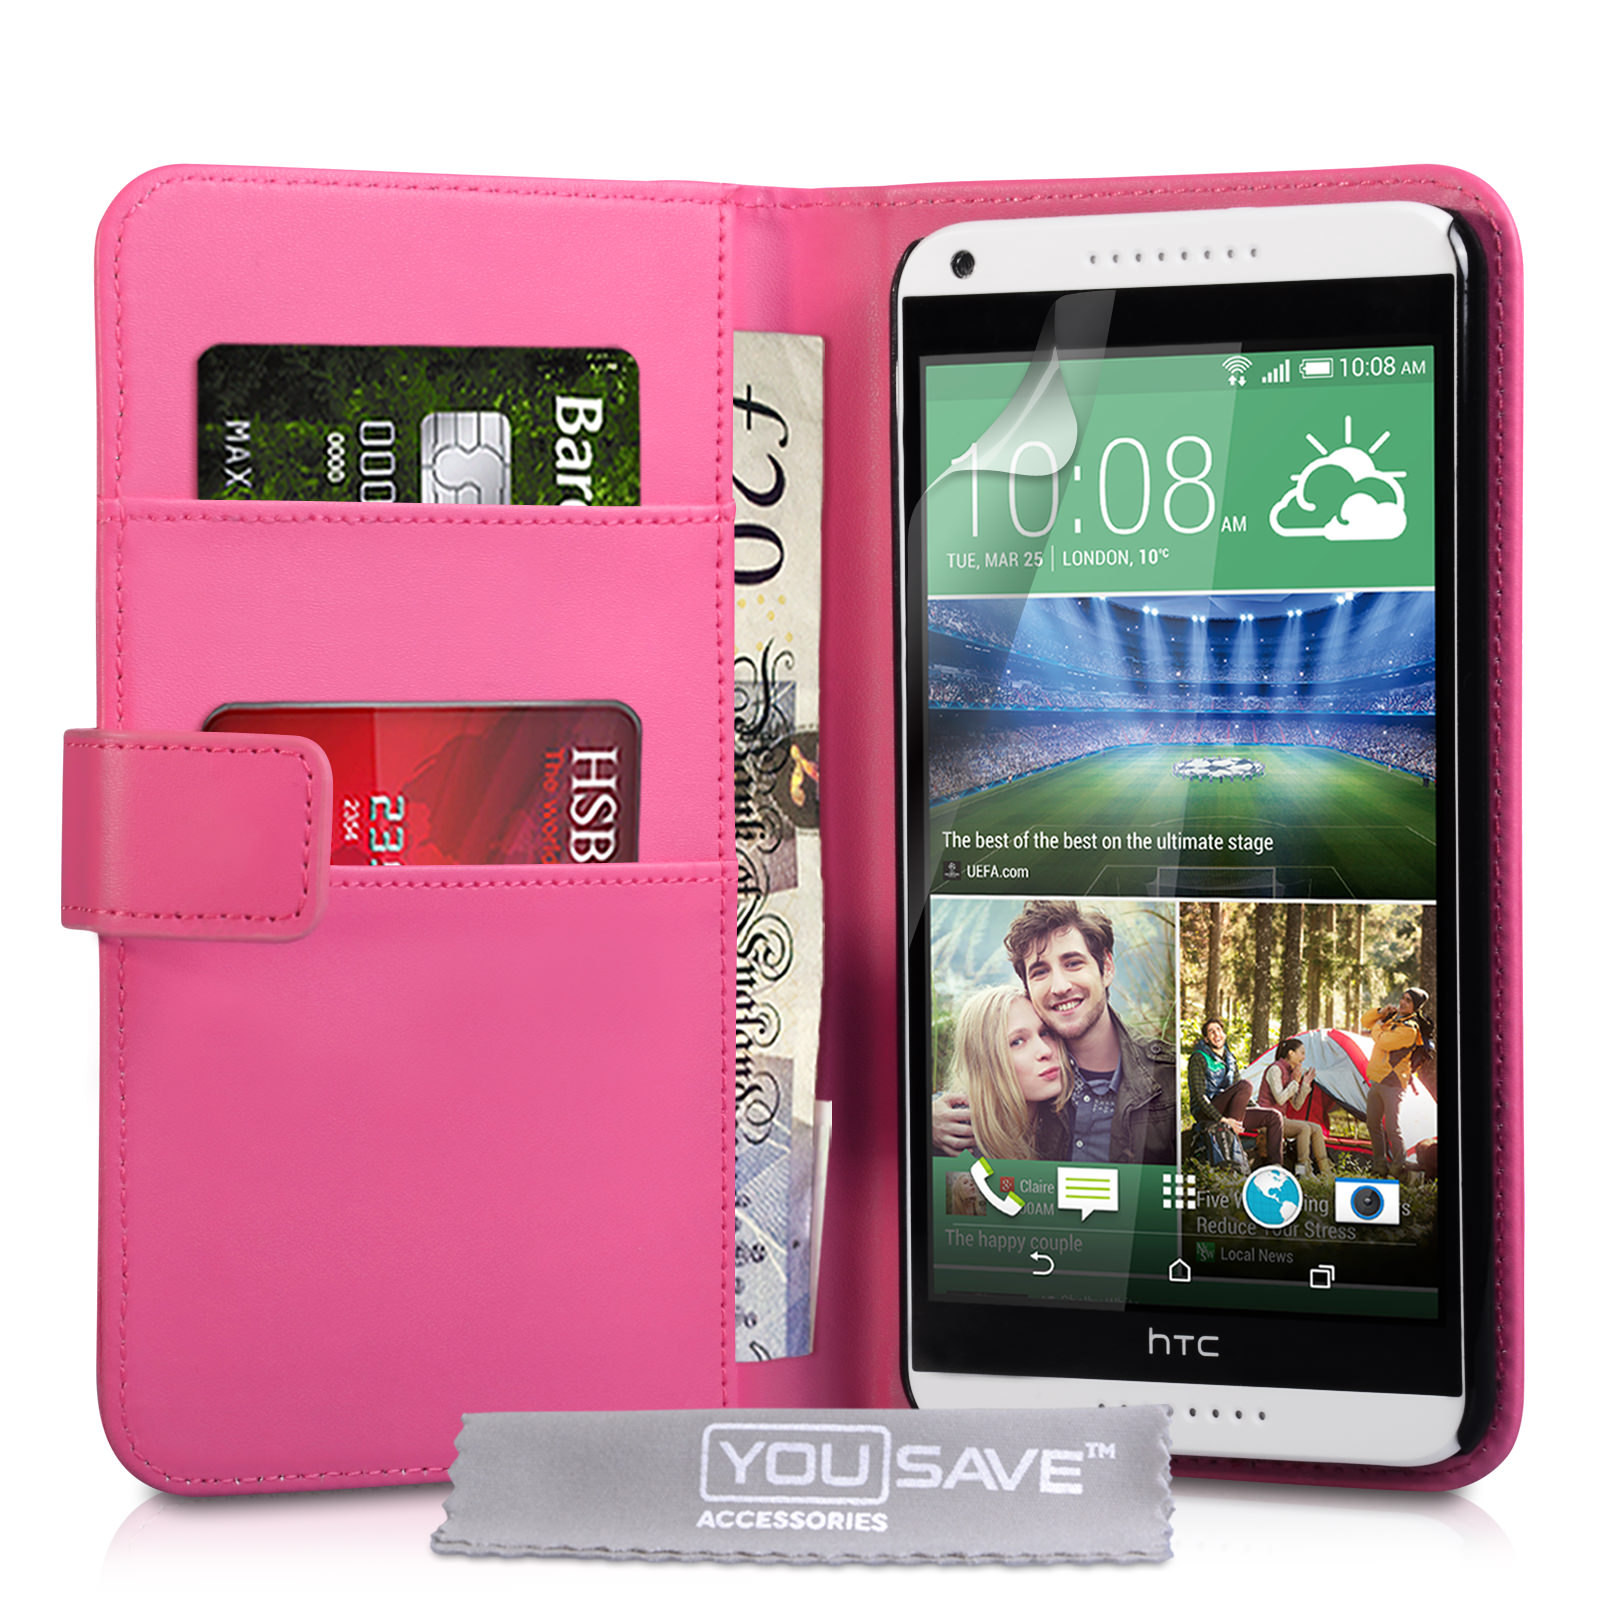 YouSave HTC Desire 816 Leather-Effect Wallet Case - Hot Pink